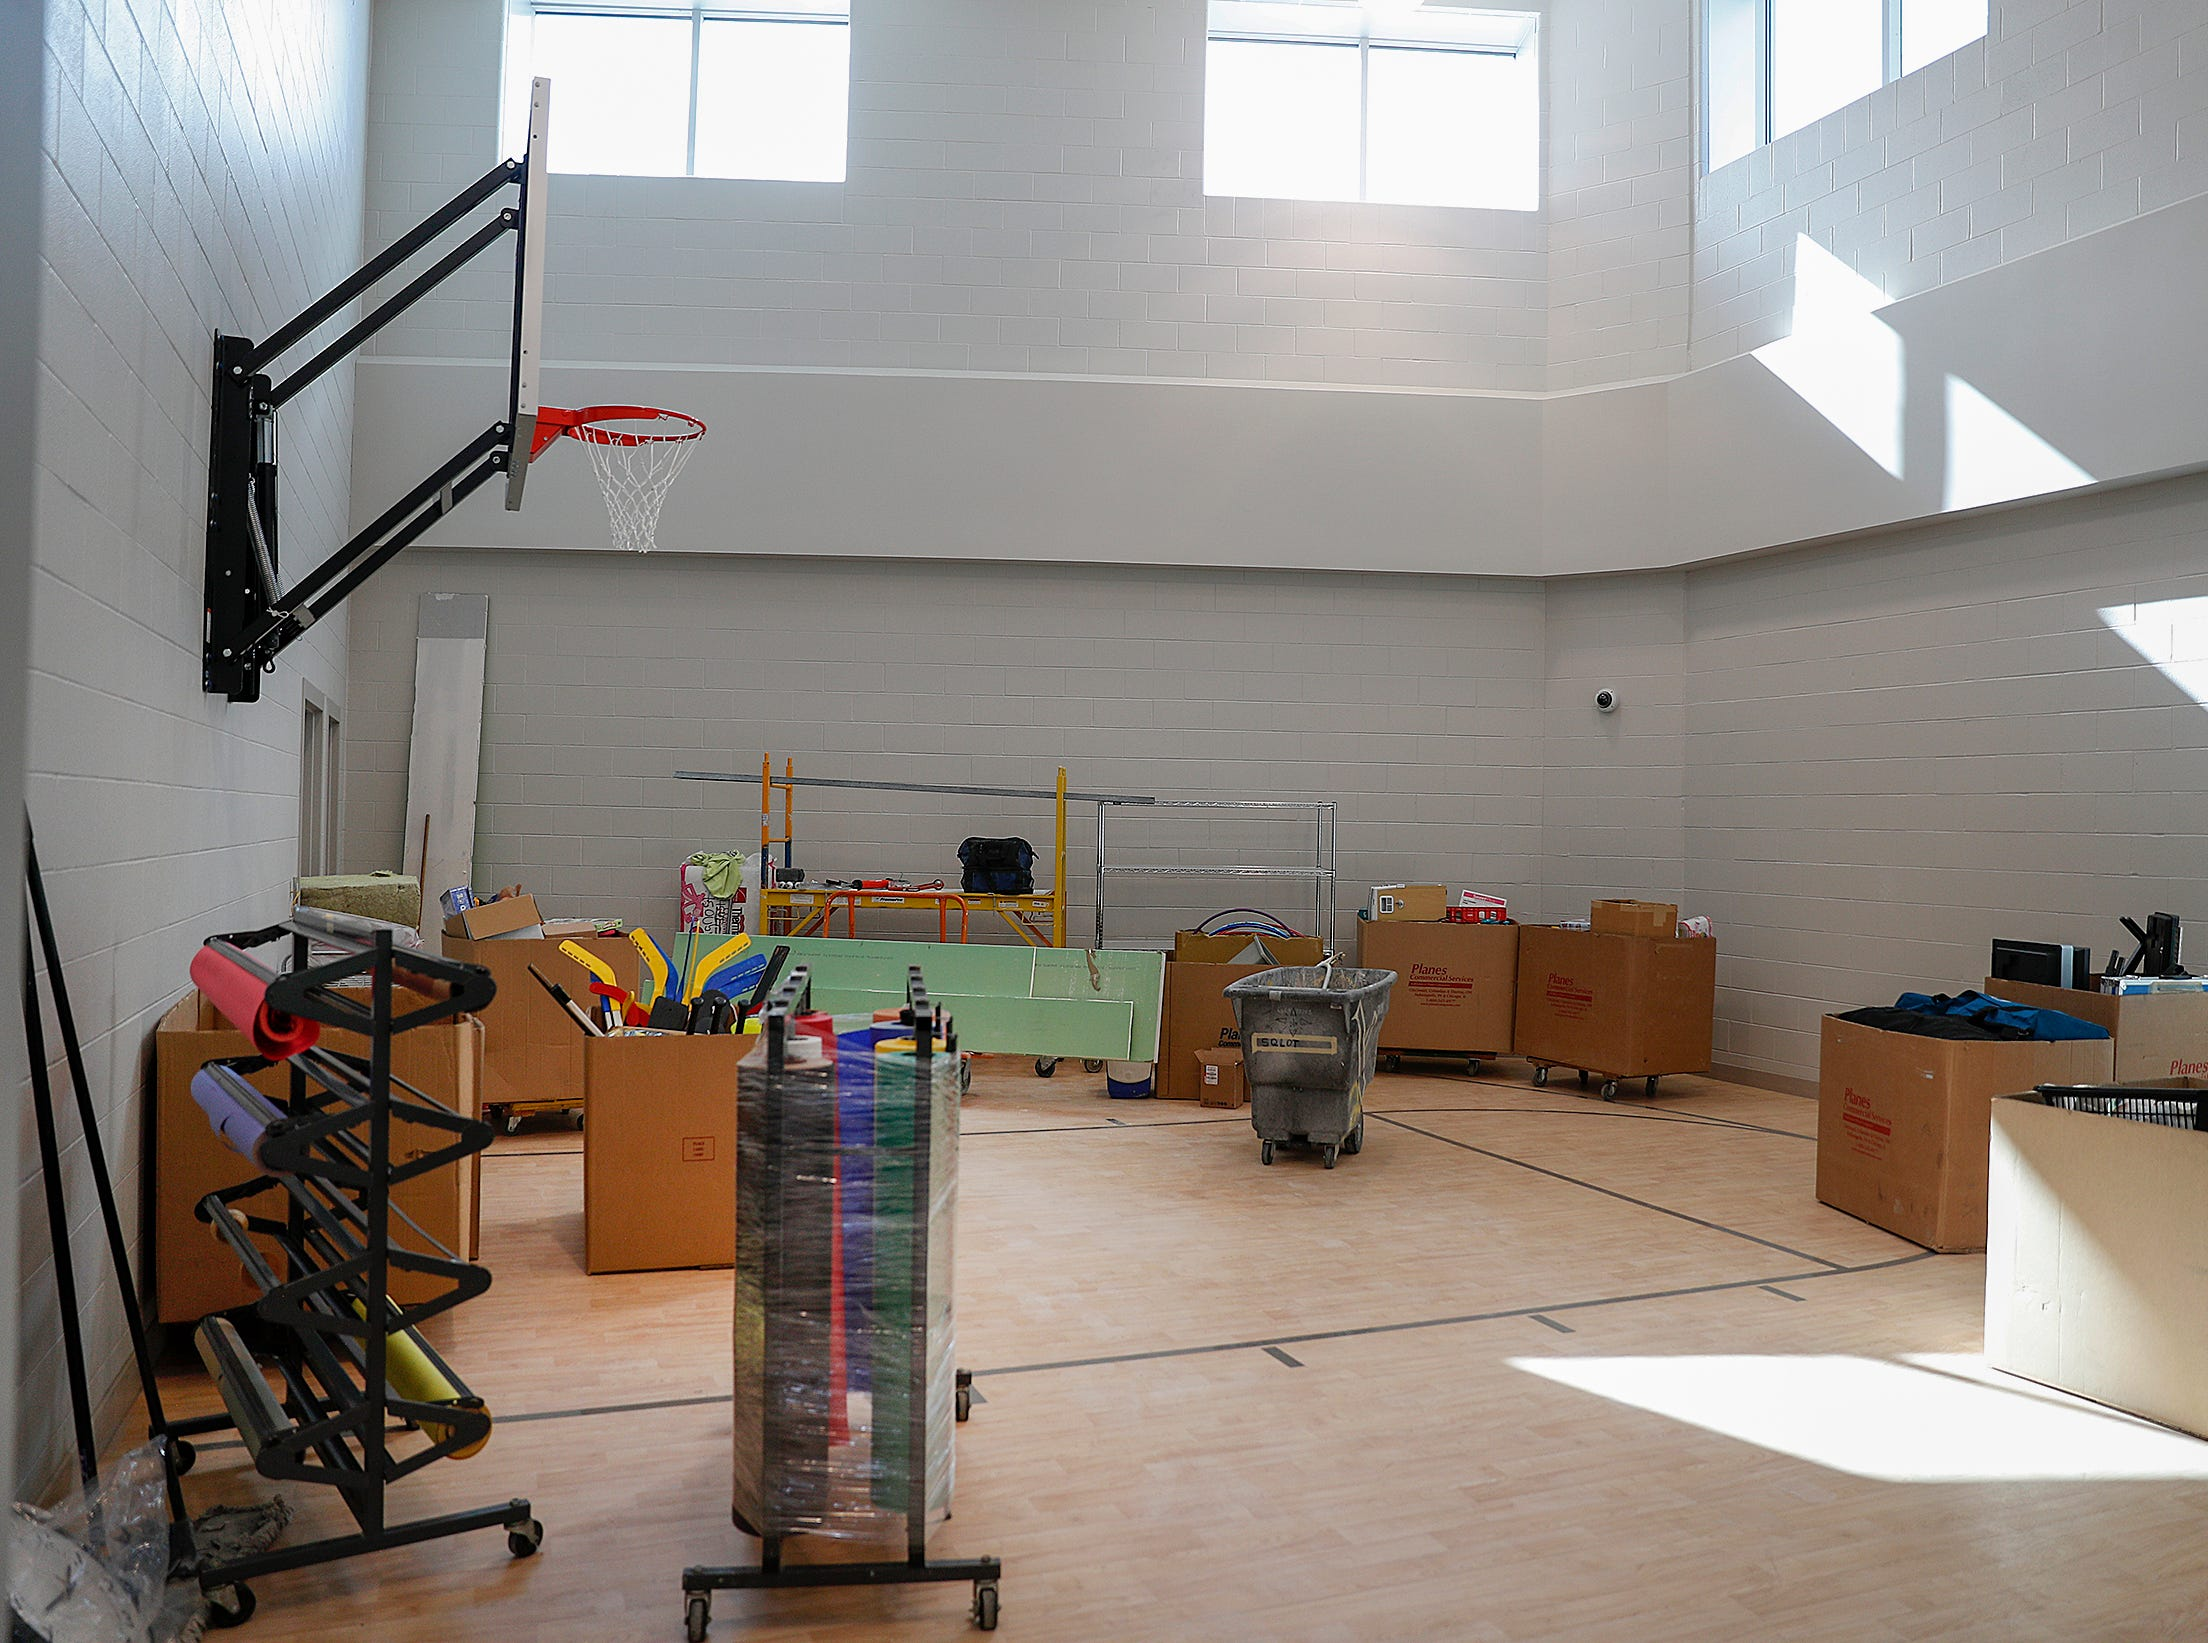 The gym and basketball court in the Treatment Mall at the new NeuroDiagnostic Institute, at 5435 E 16th St., will replace LaRue Carter as the center for mental health care on Wednesday, March 13, 2019.